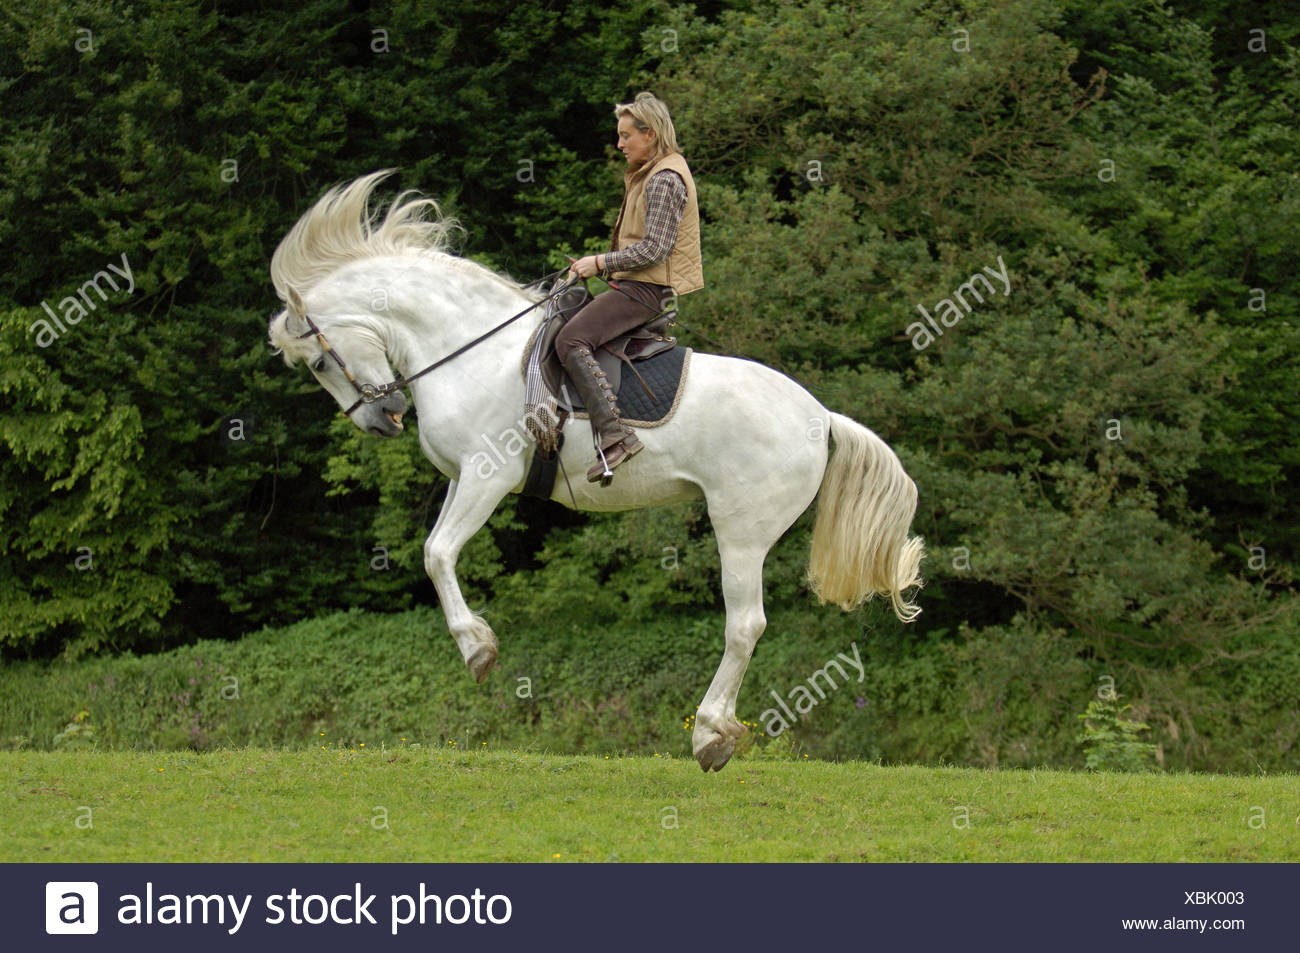 horse - bitless bridle Stock Photo: 282544195 - Alamy